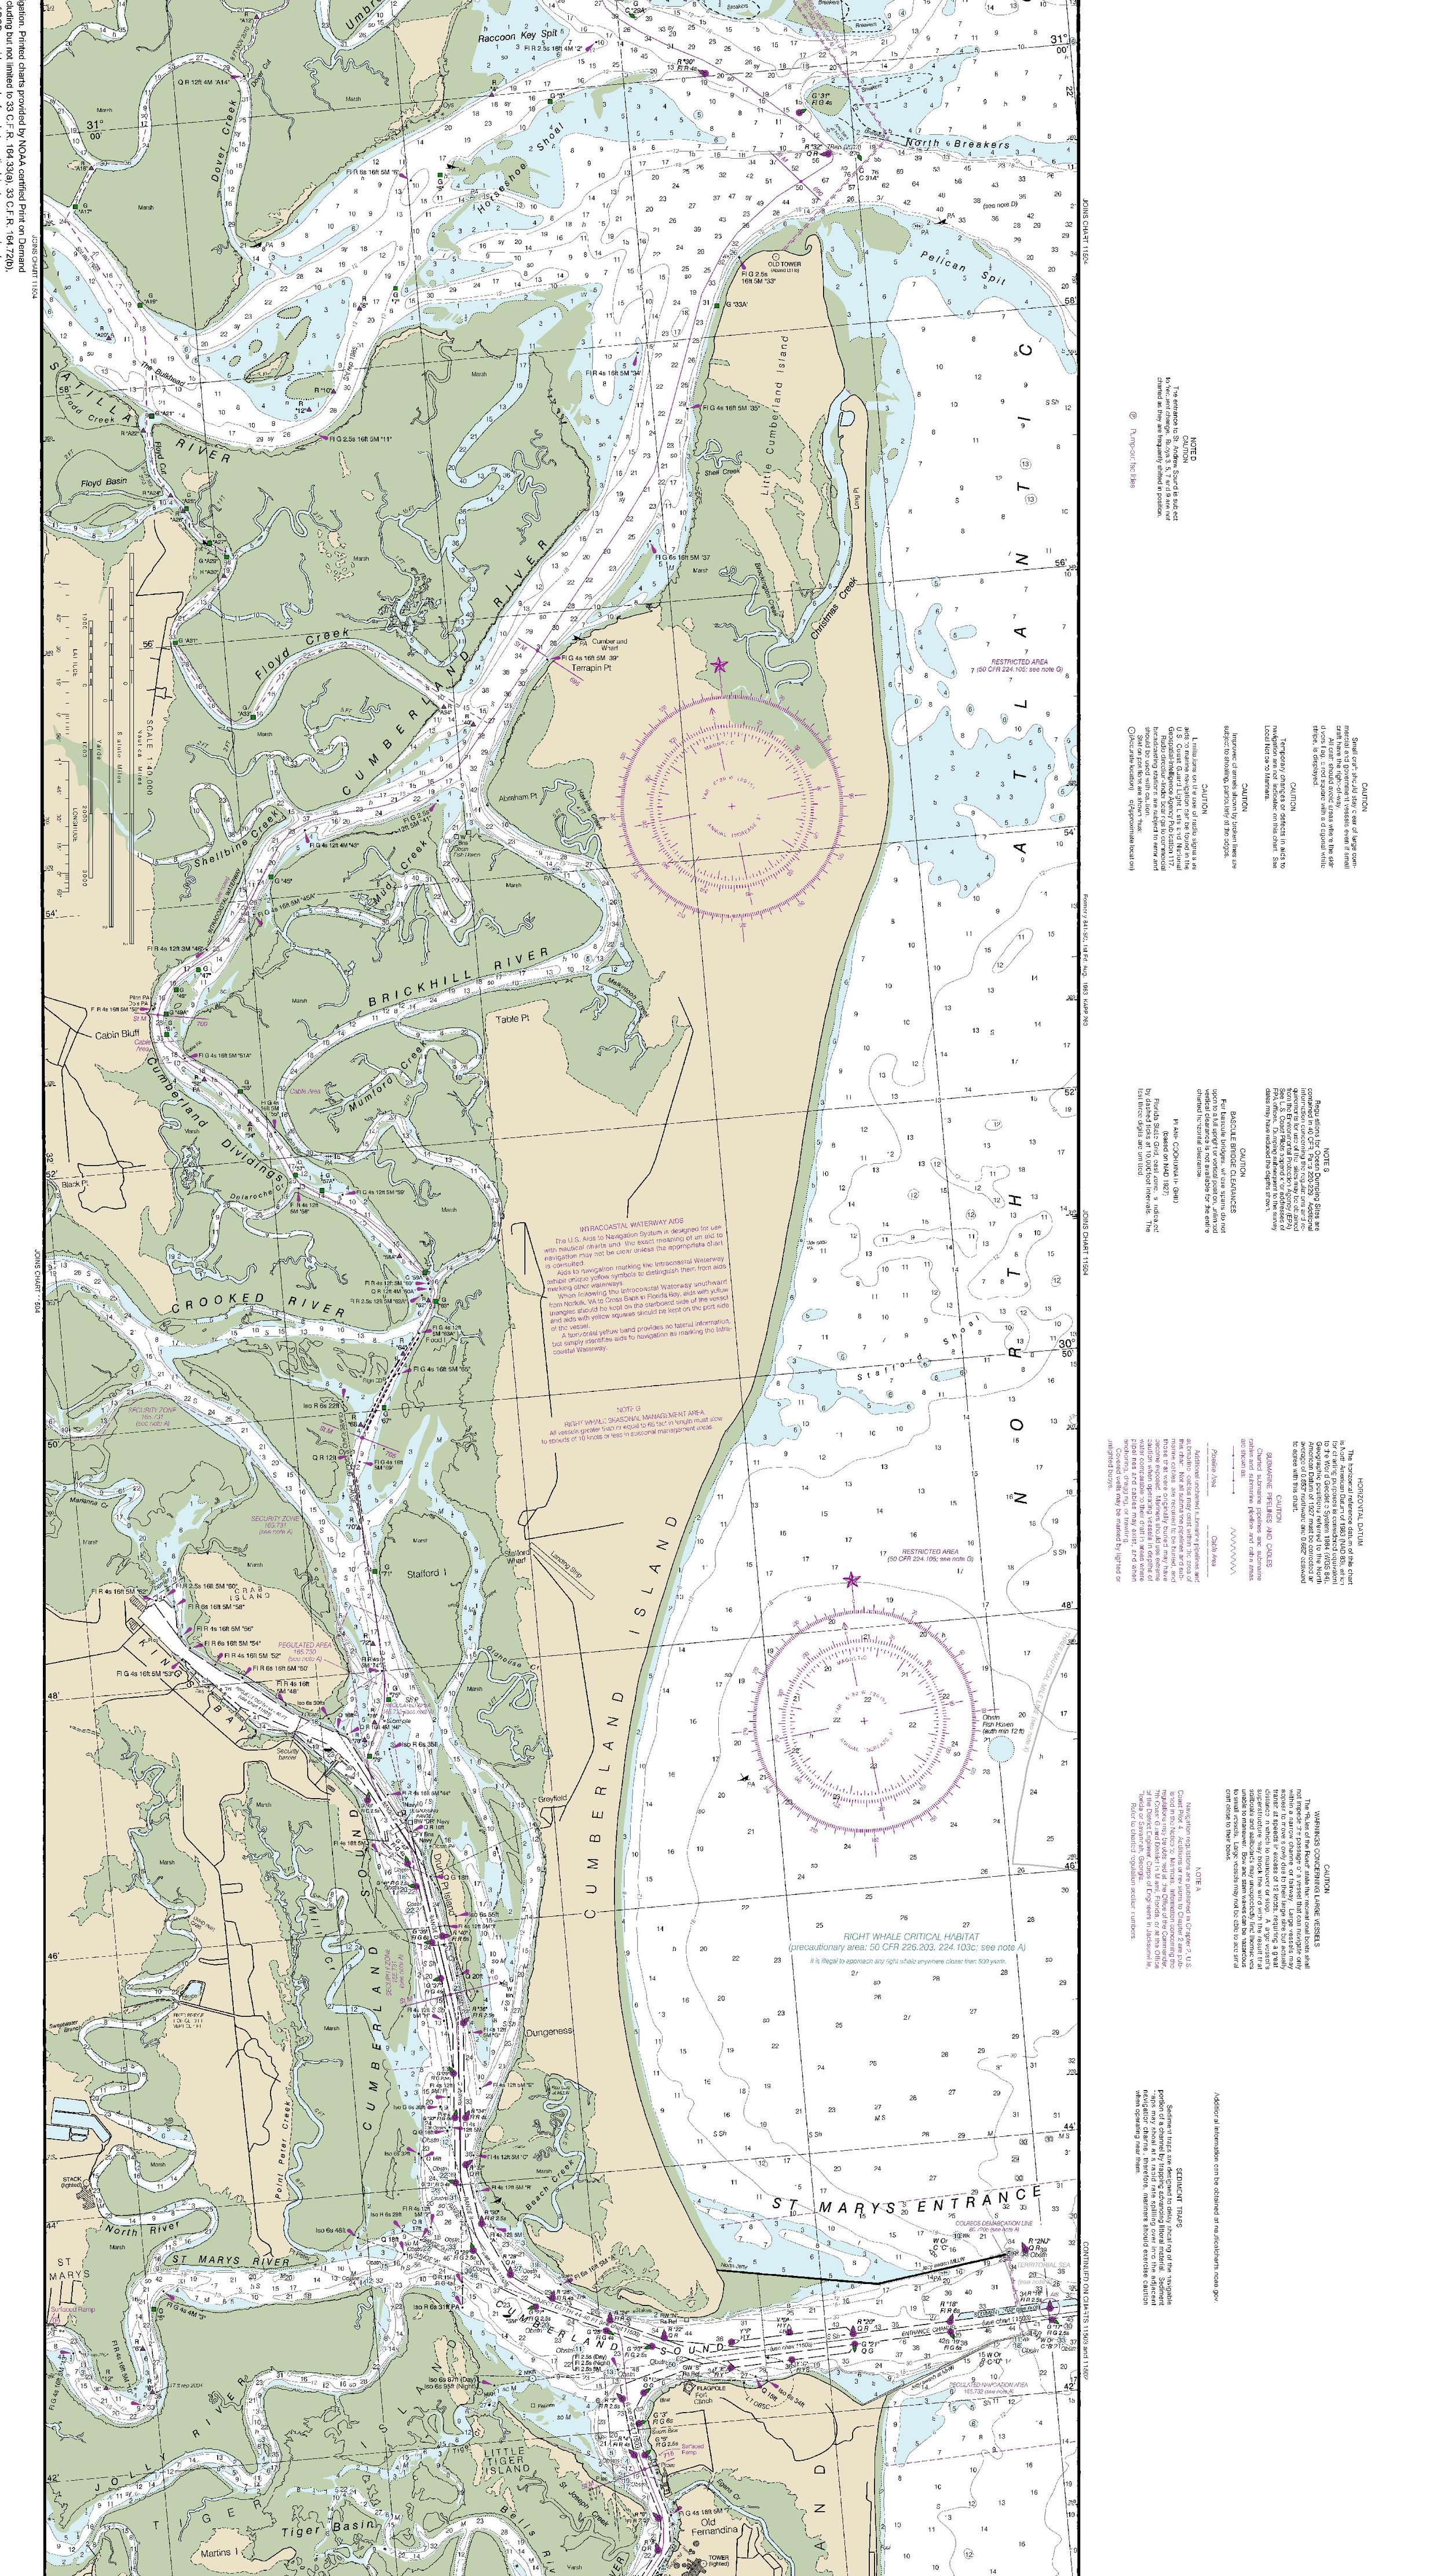 The Intracoastal Waterway Oceanic Chart